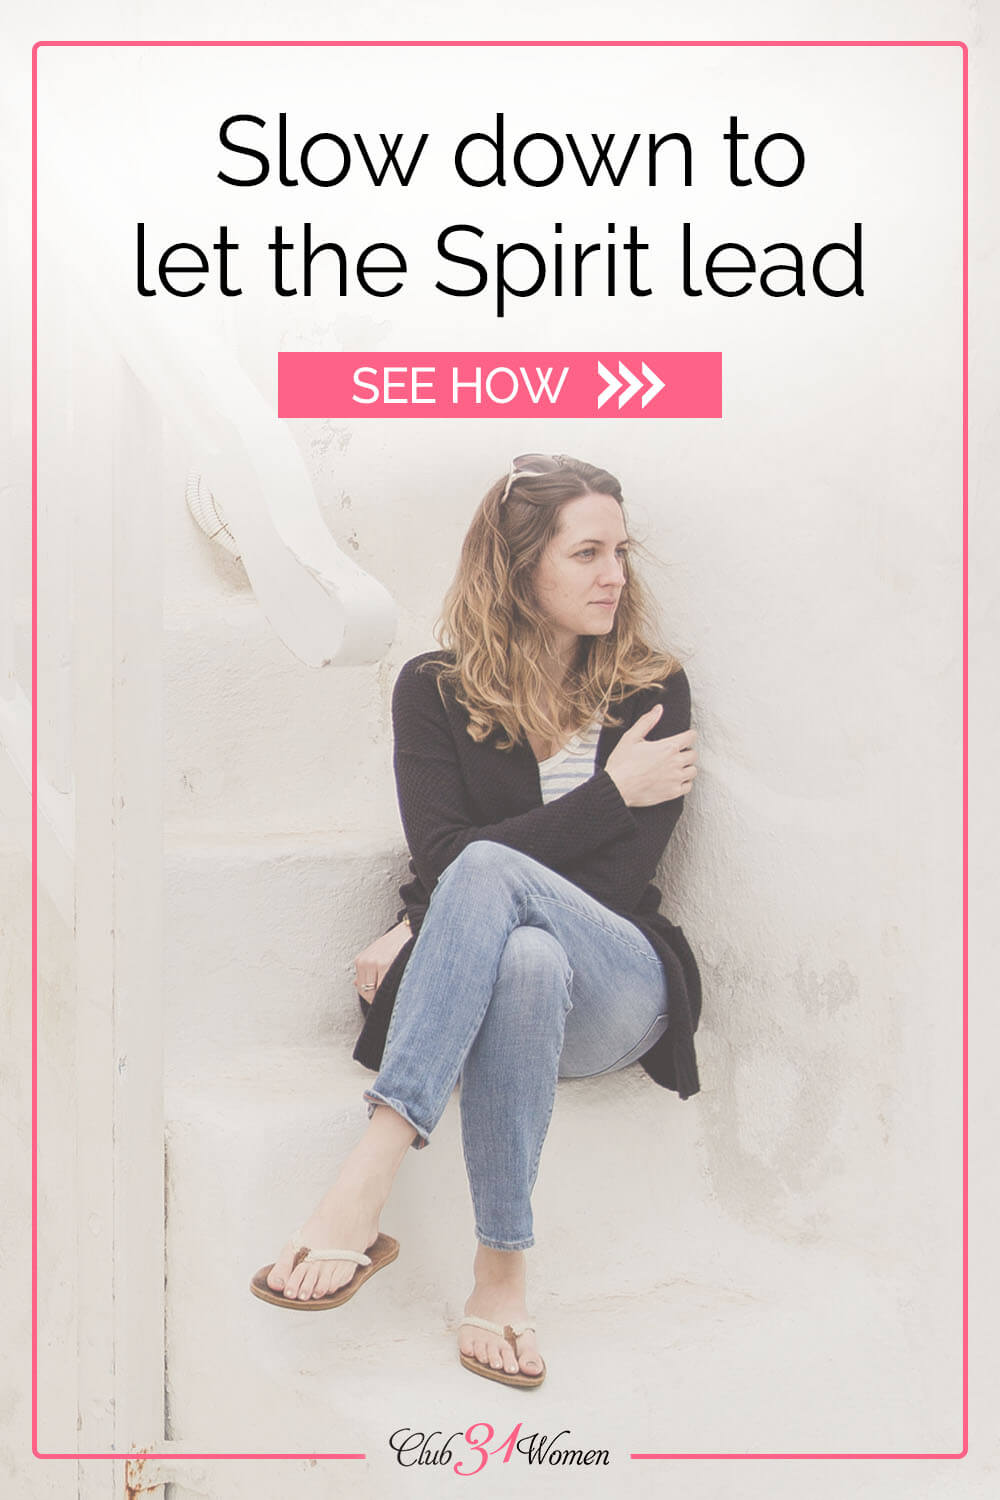 When you slow down and hear the wisdom of the Spirit, it can help replace controlling thoughts with the heart of God and His thoughts. via @Club31Women